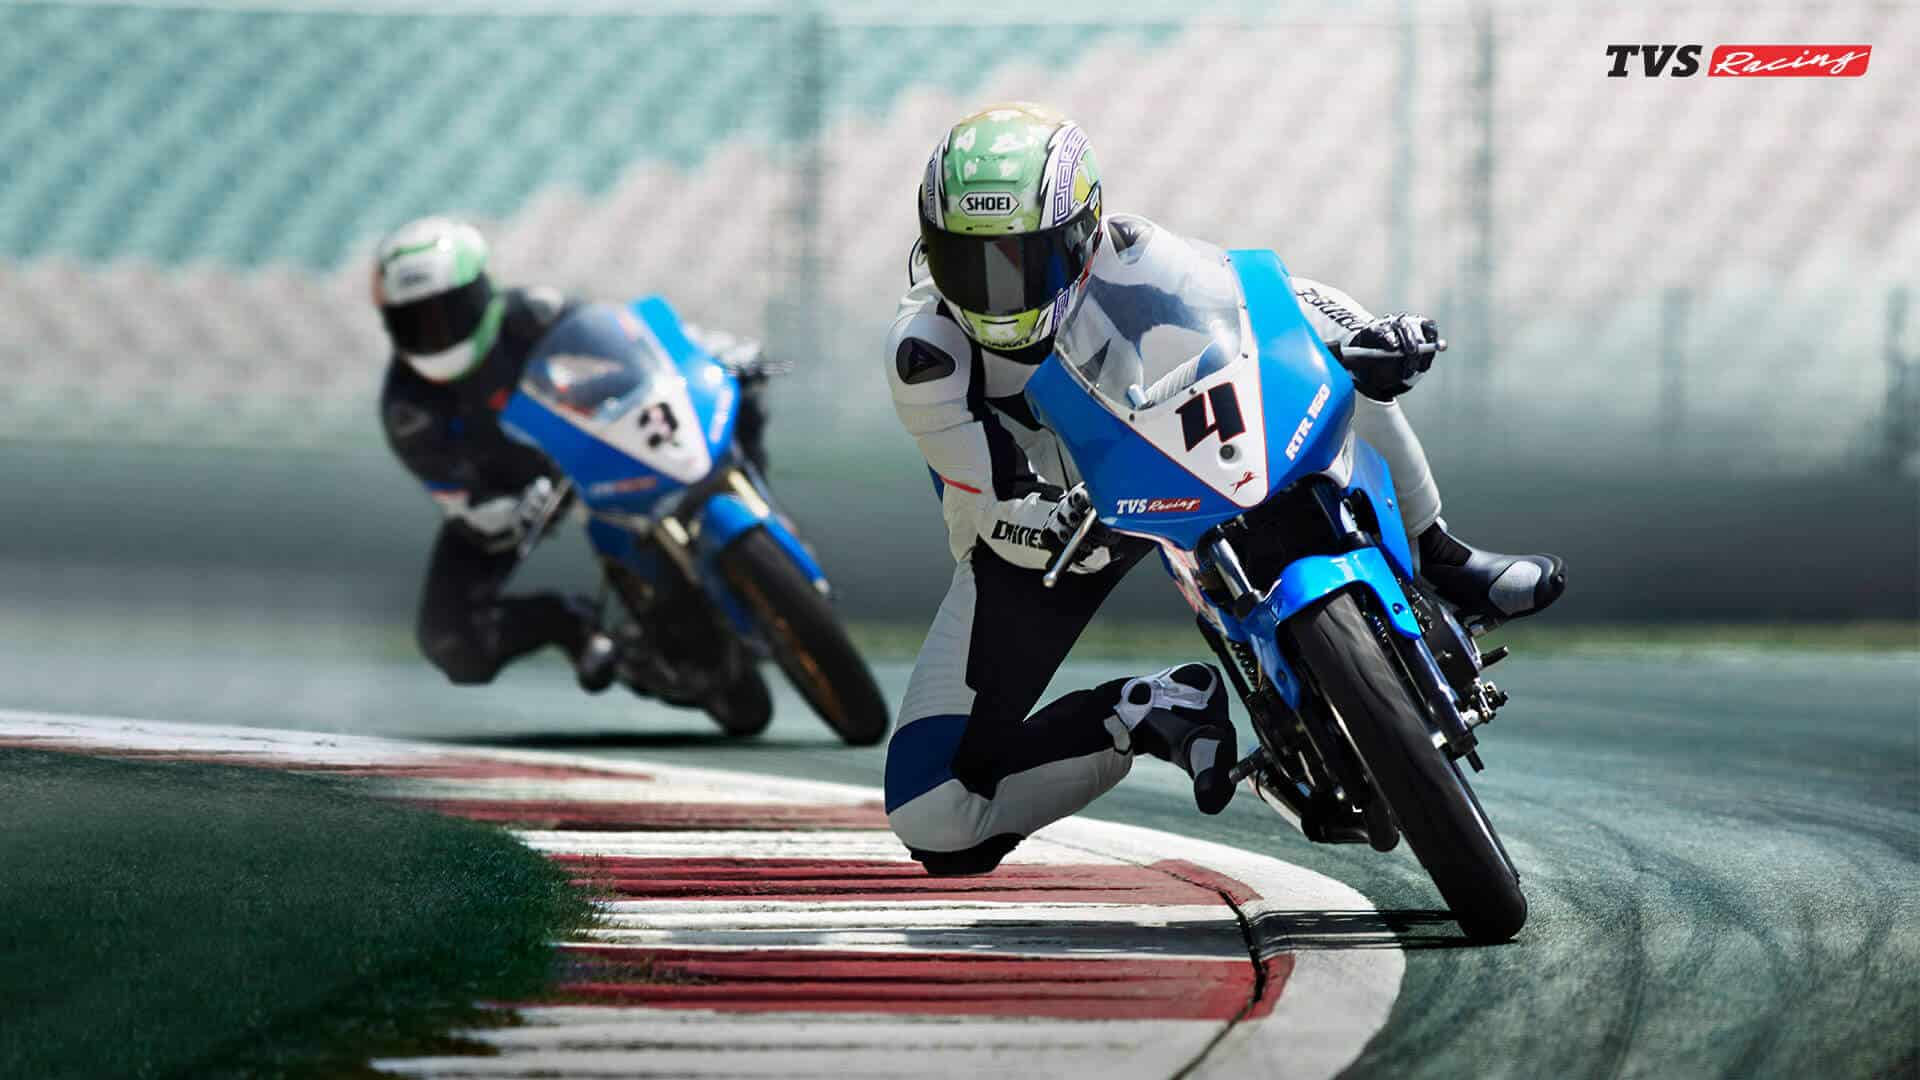 How to become a professional bike racer in India